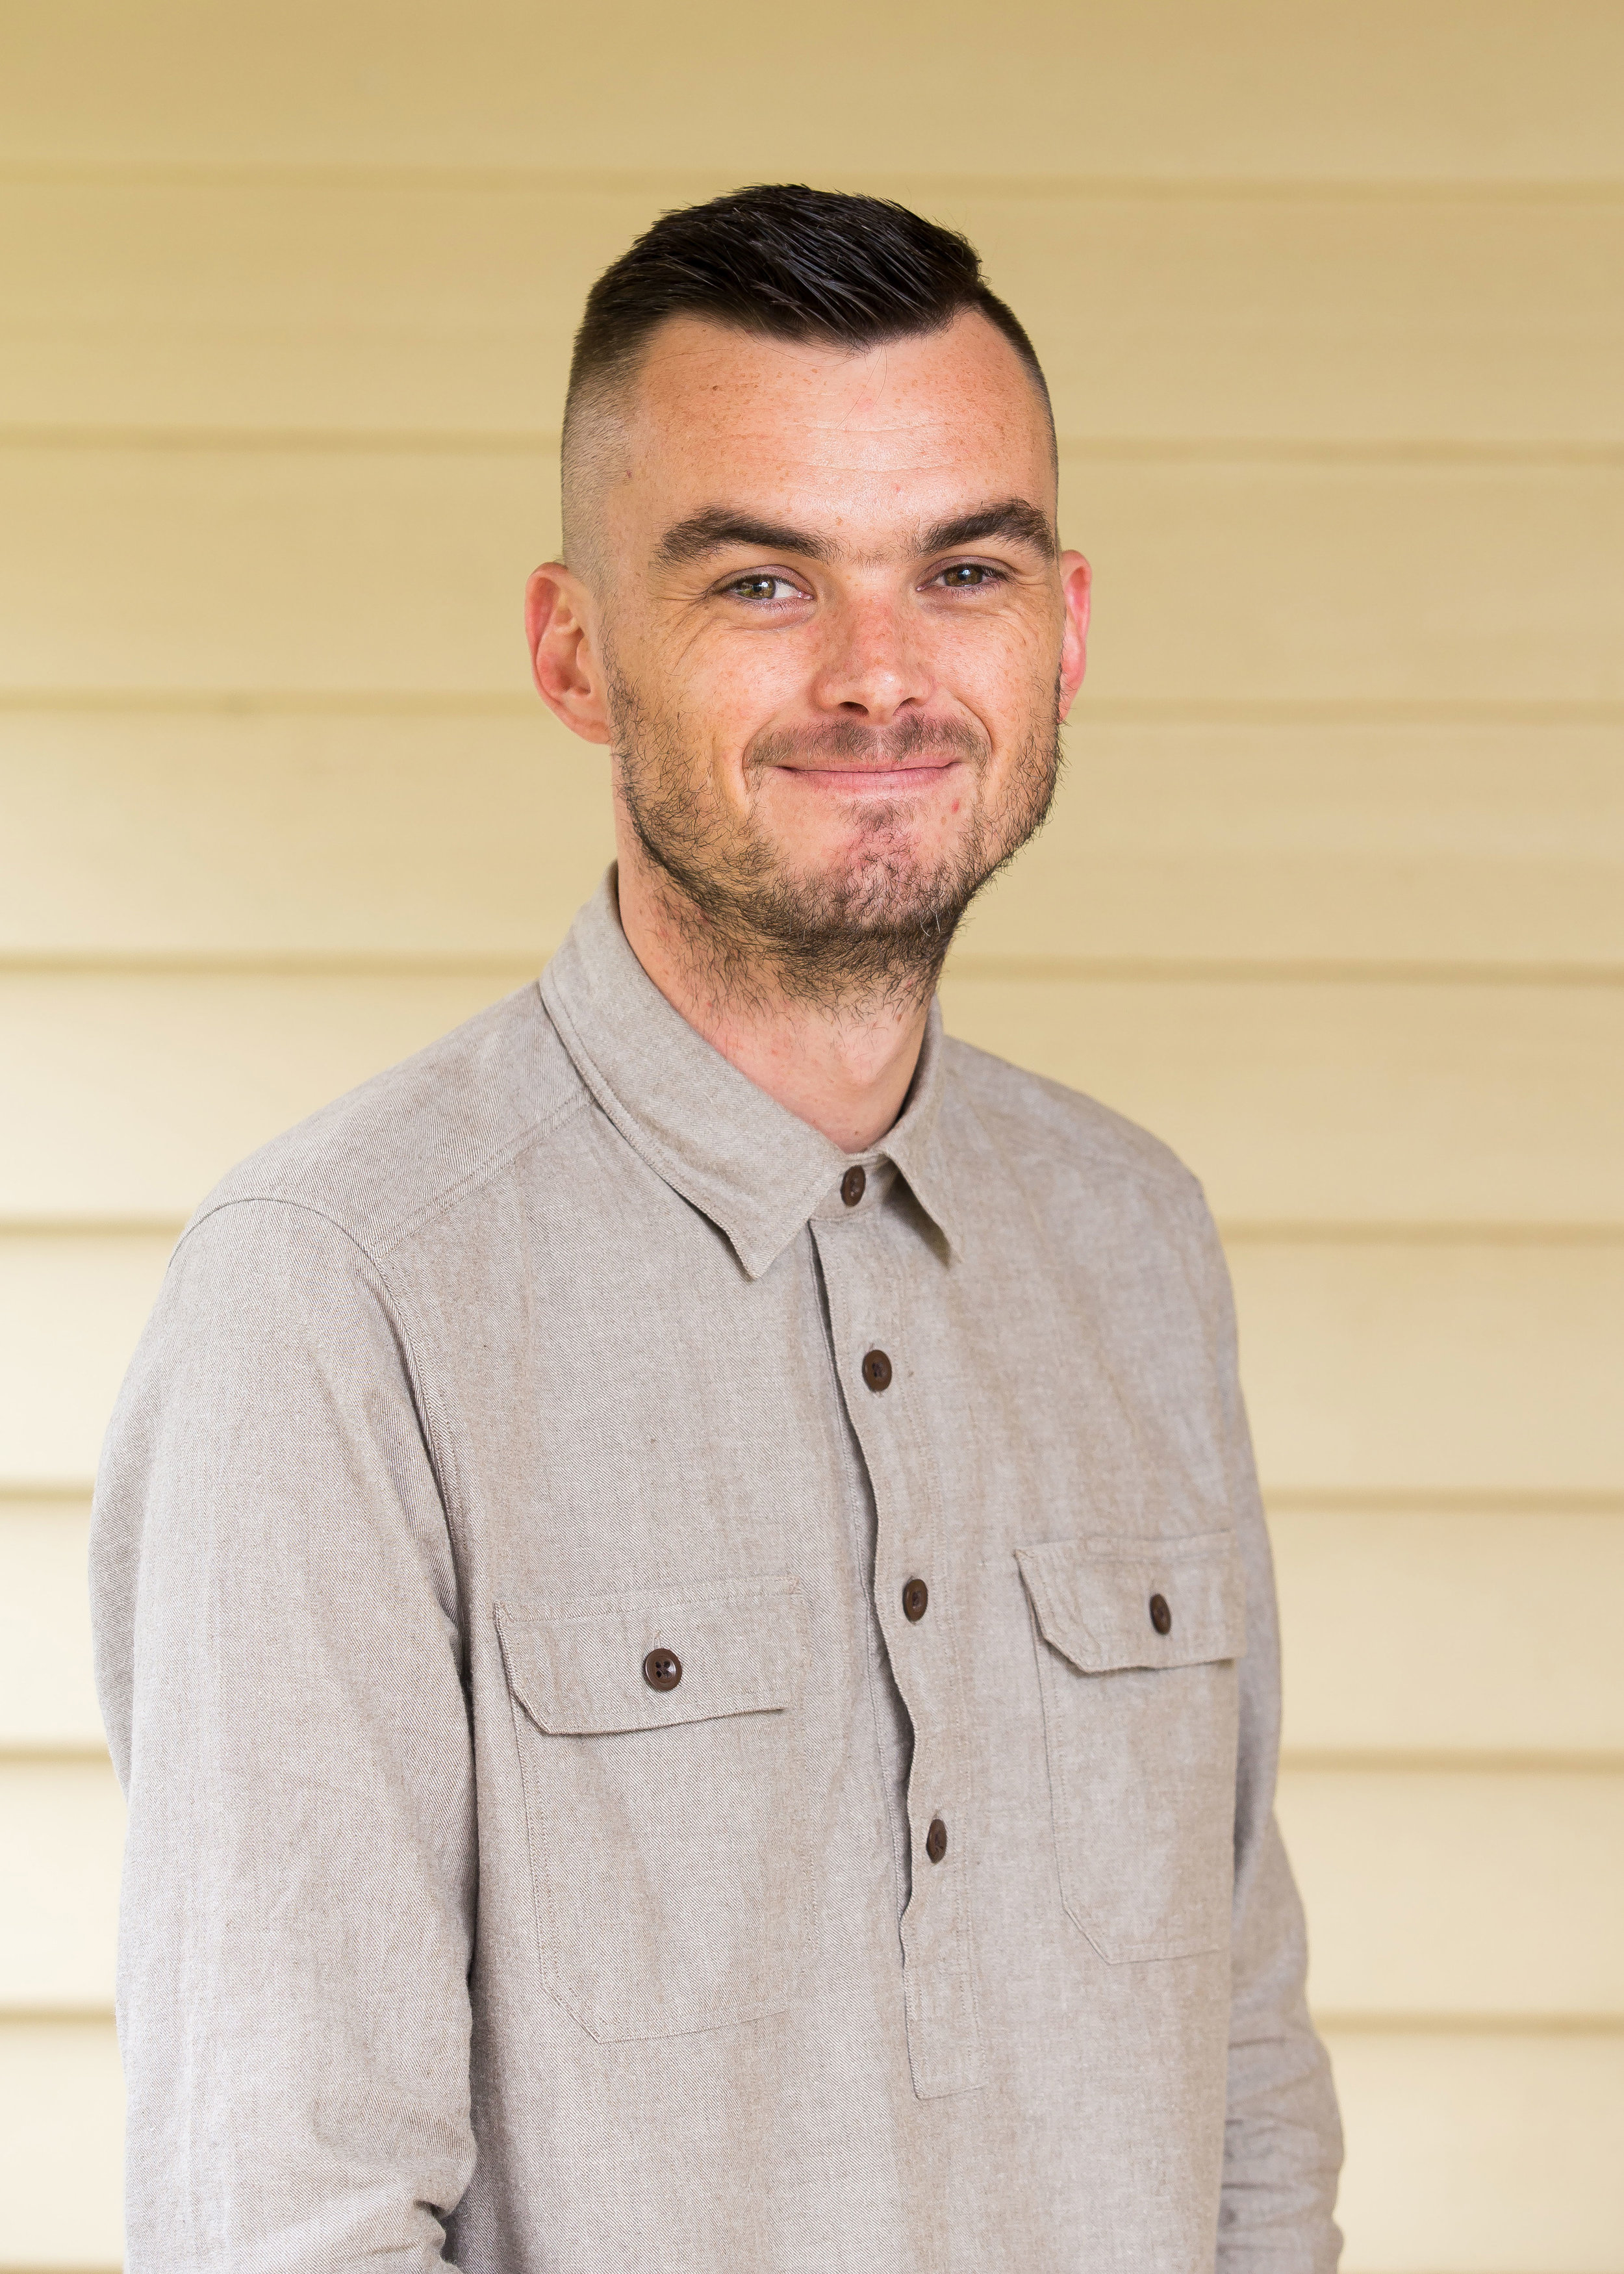 Dan Moye - NDIS and Intake Officer